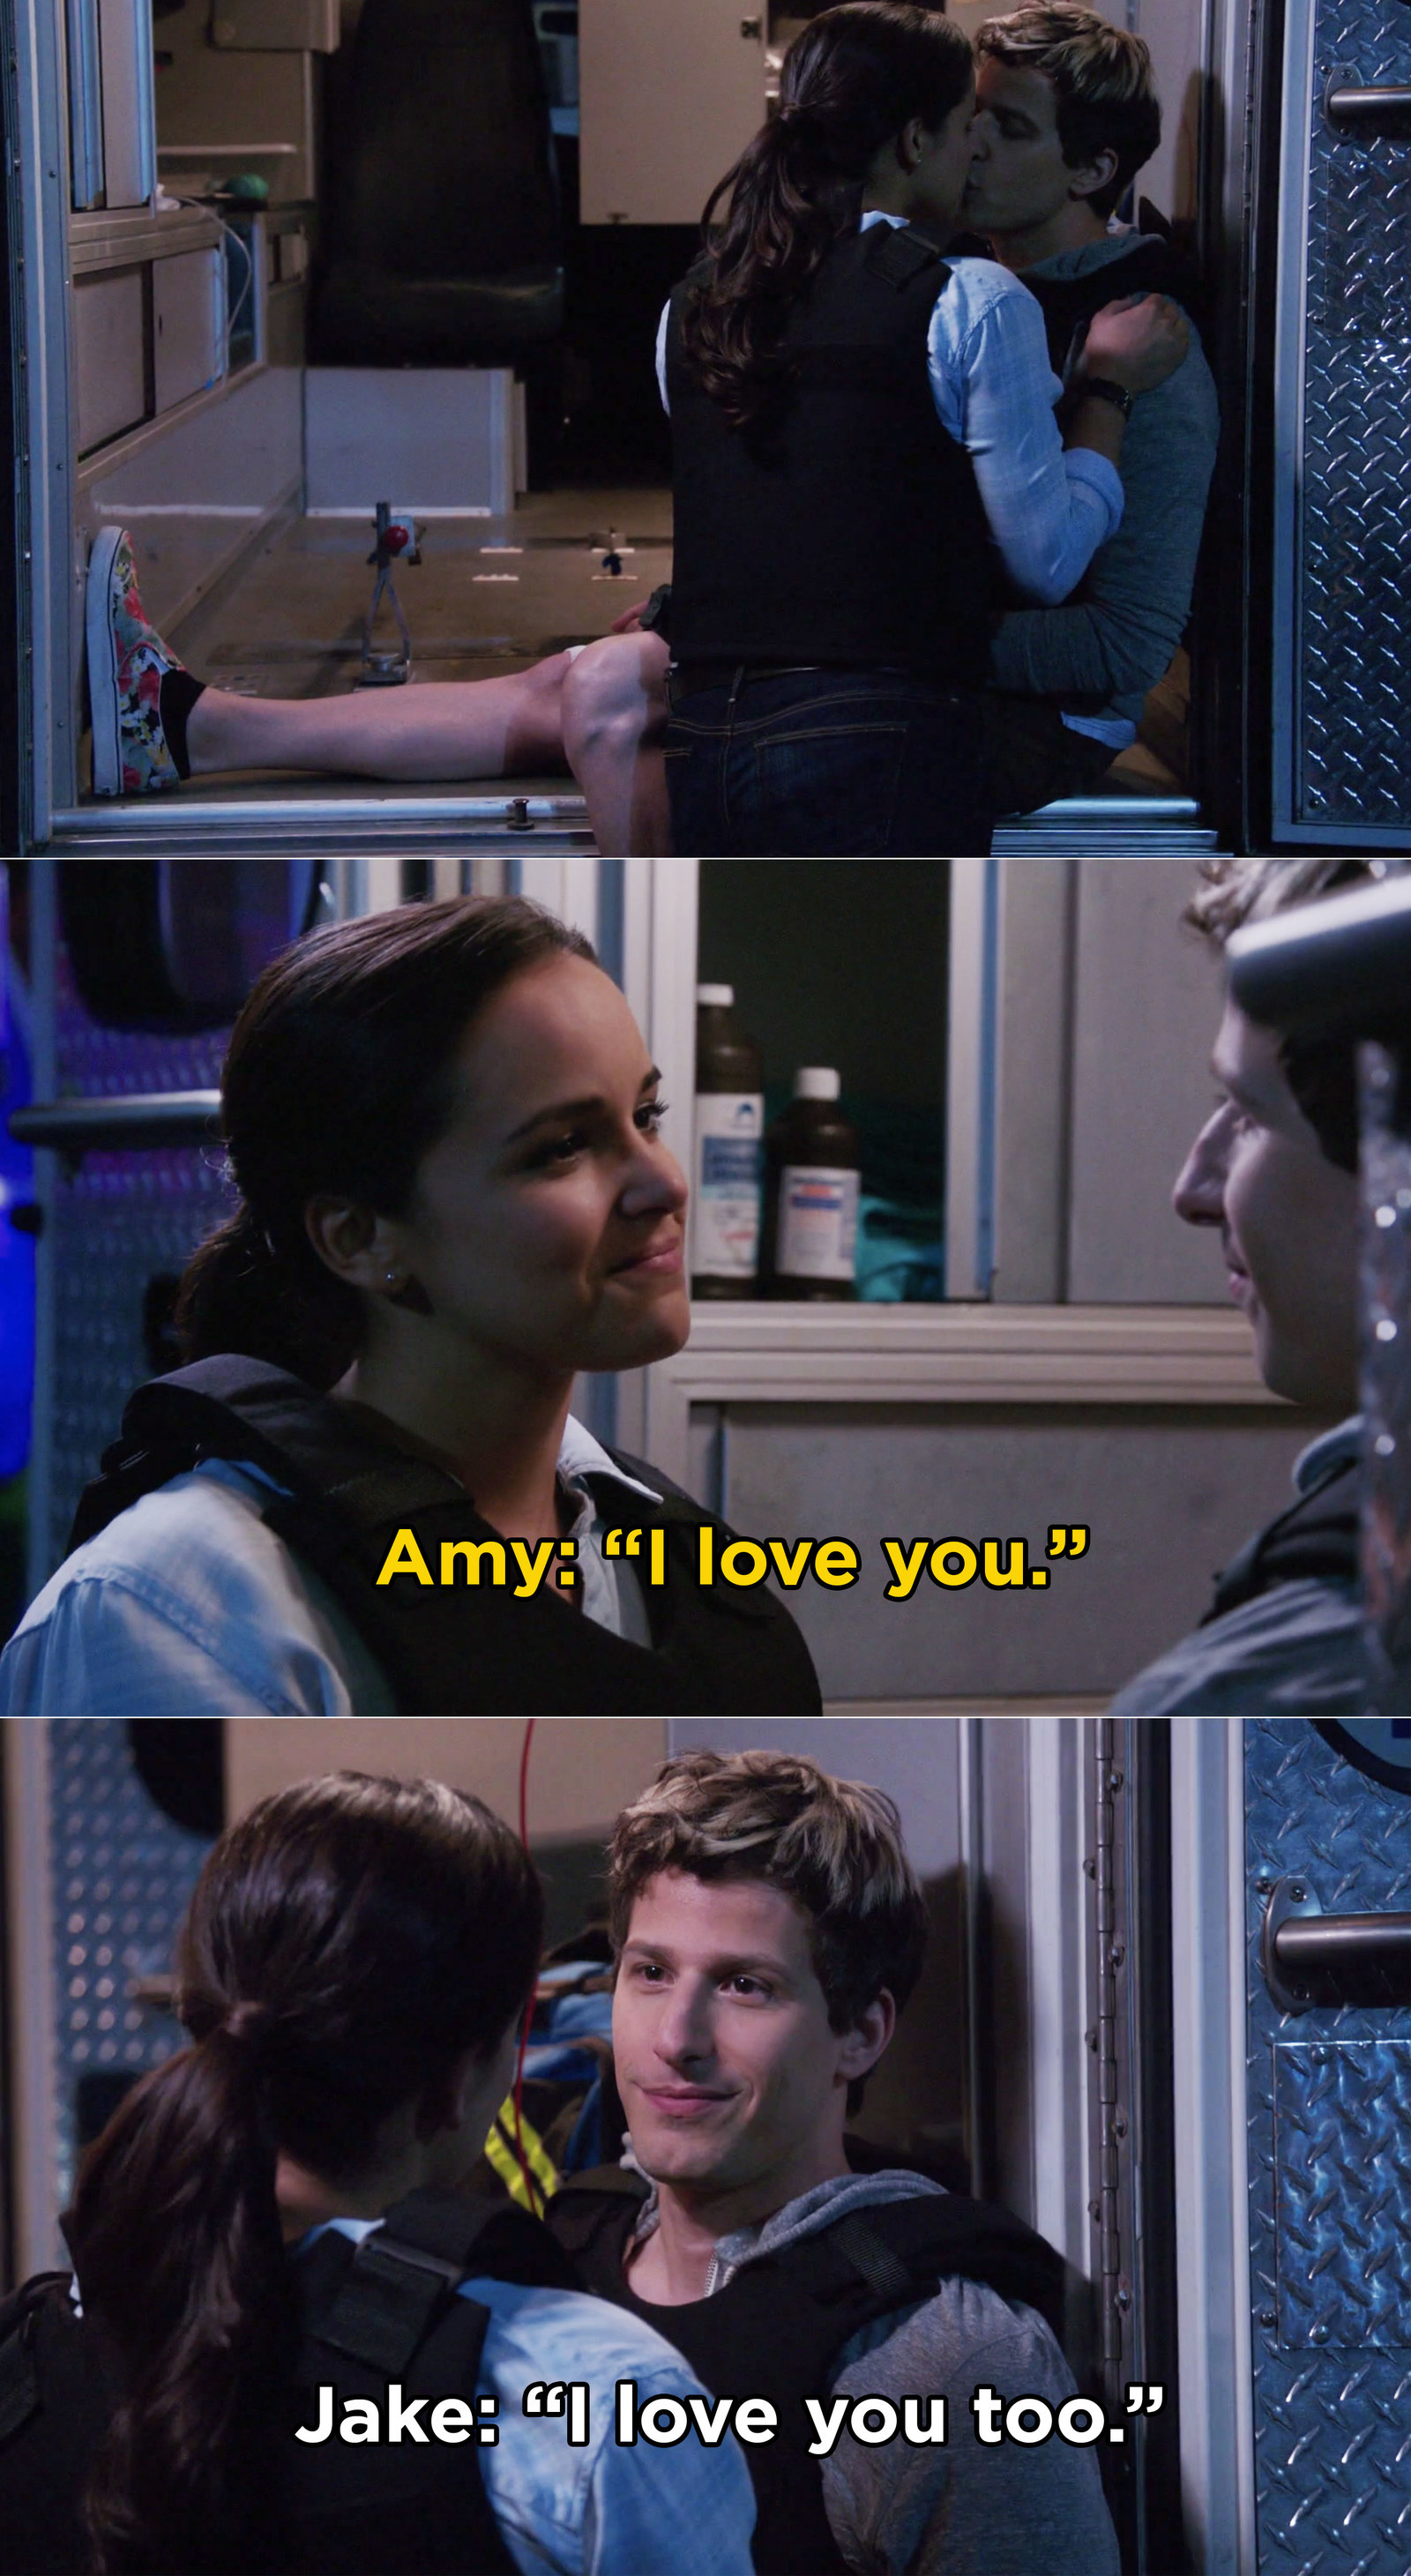 And then, when Jake and Amy were reunited after months apart